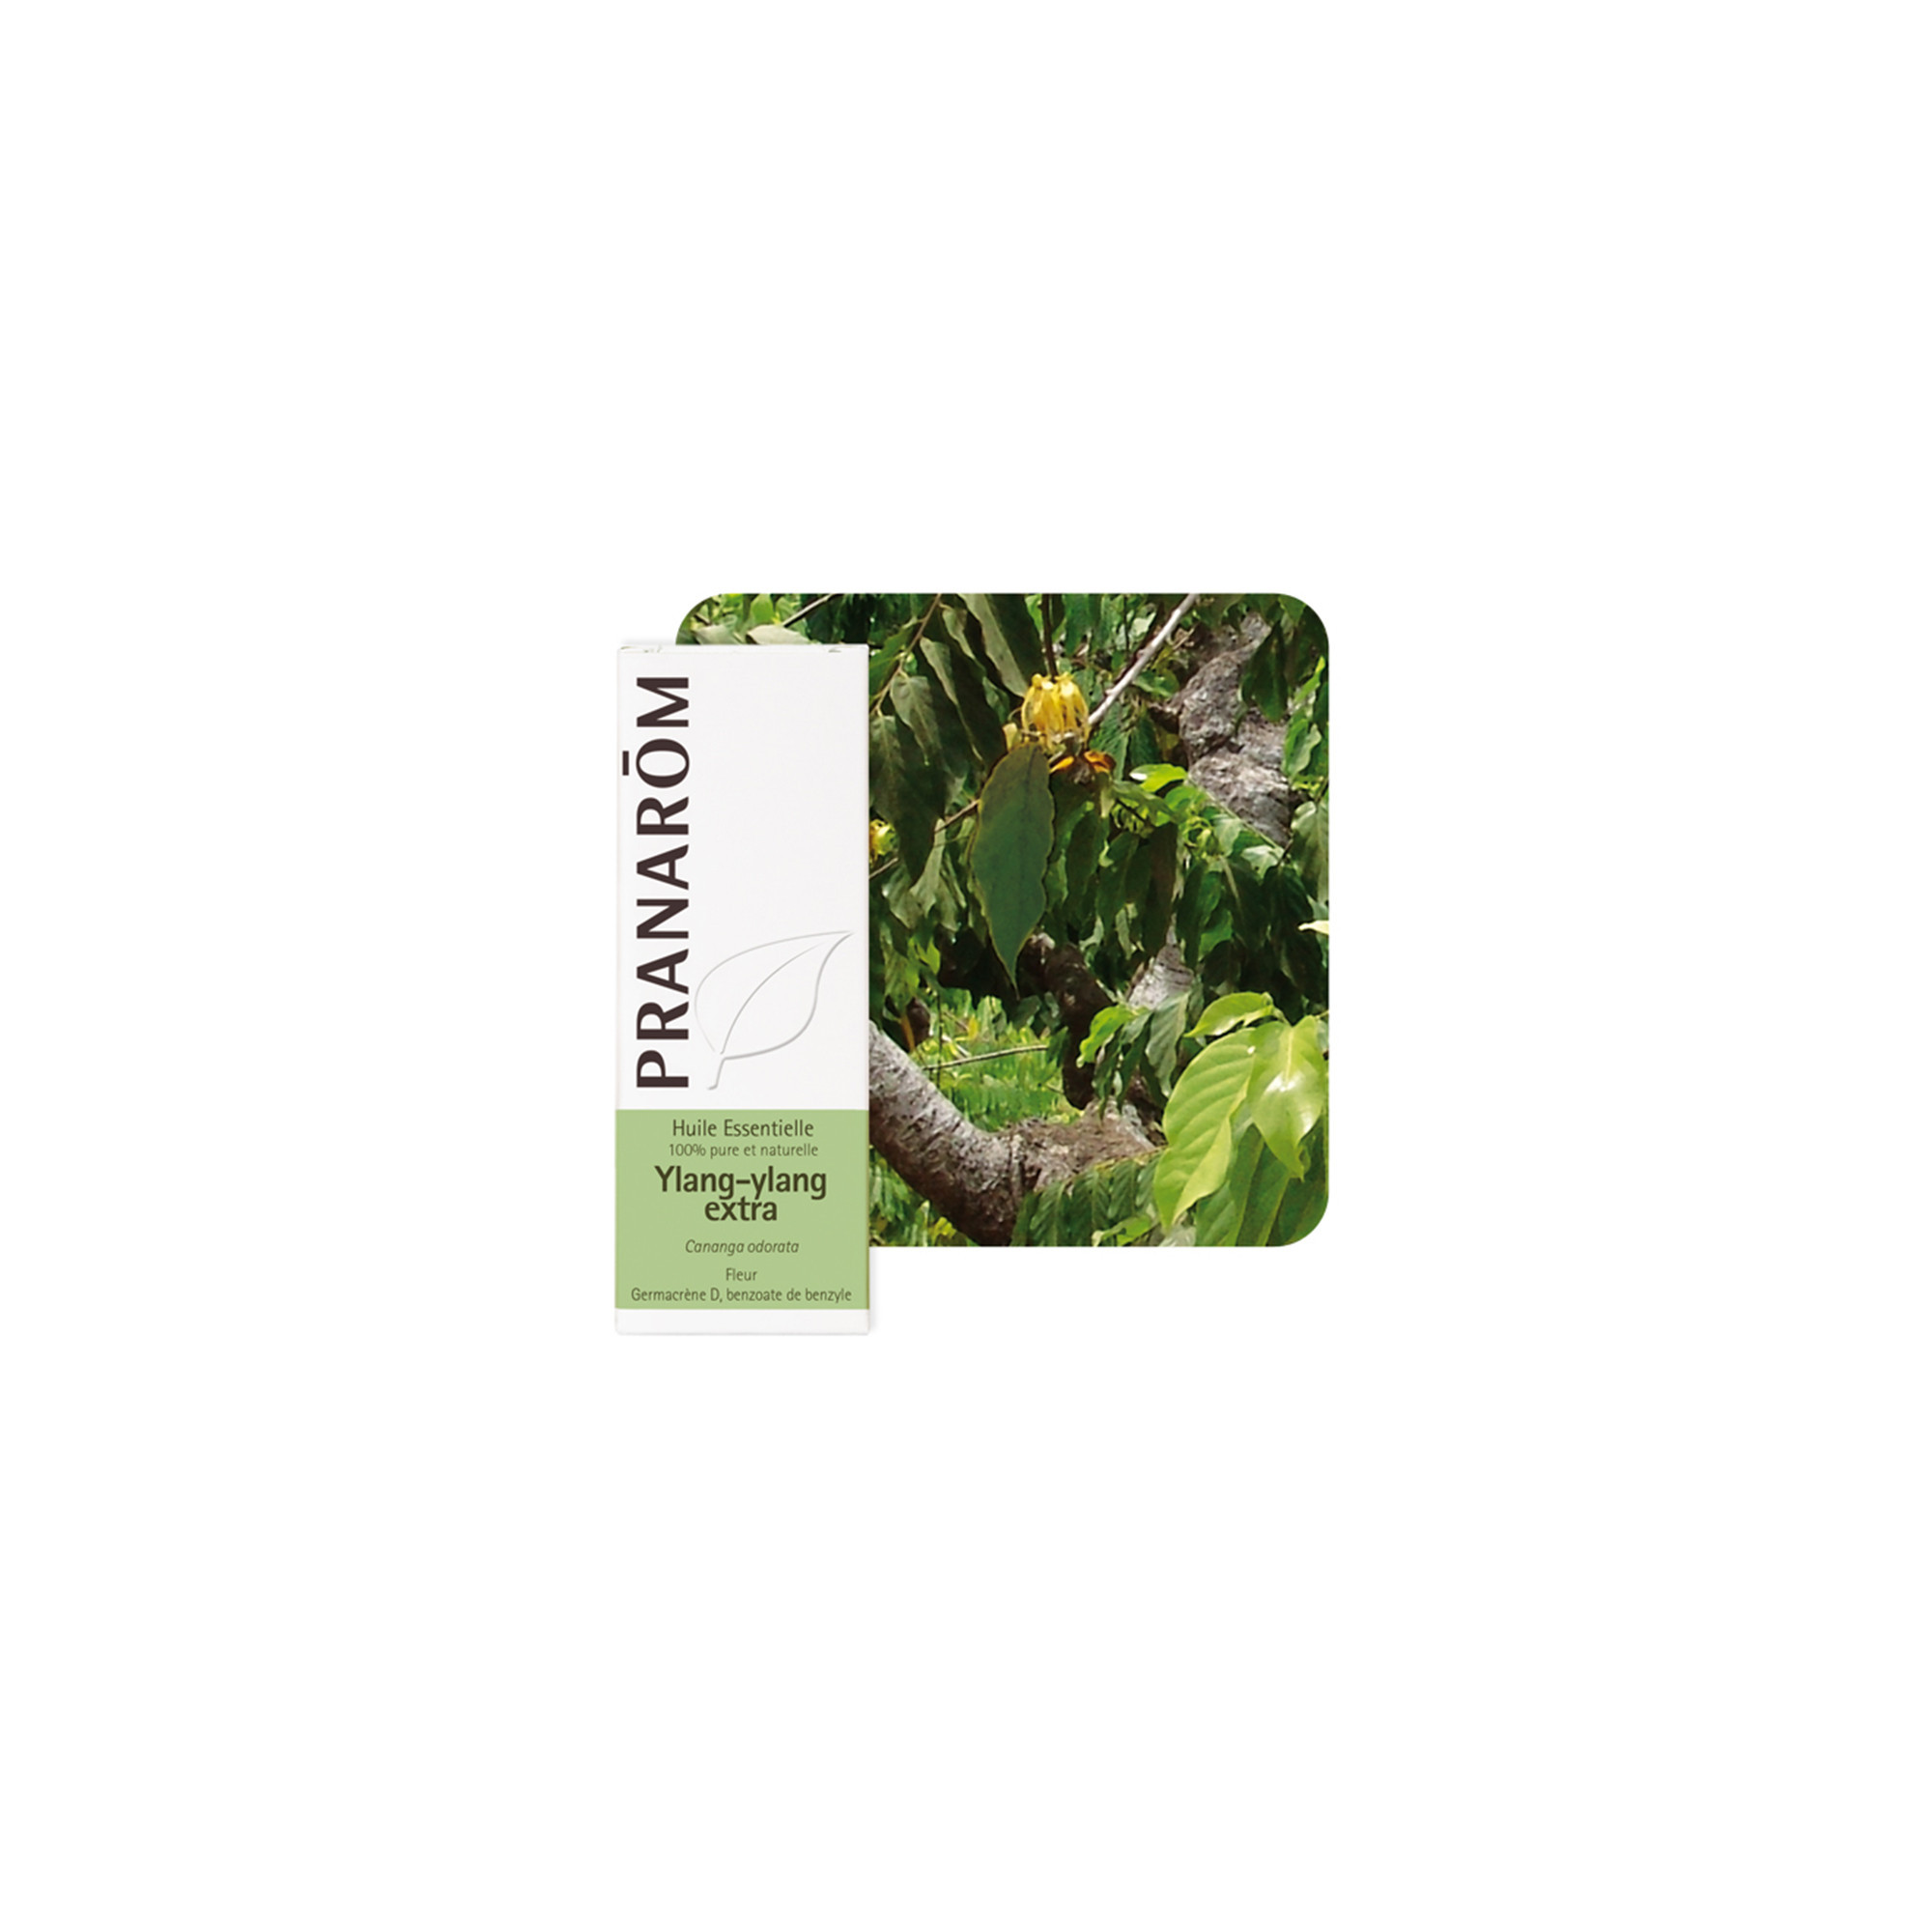 Huile essentielle Ylang Ylang extra